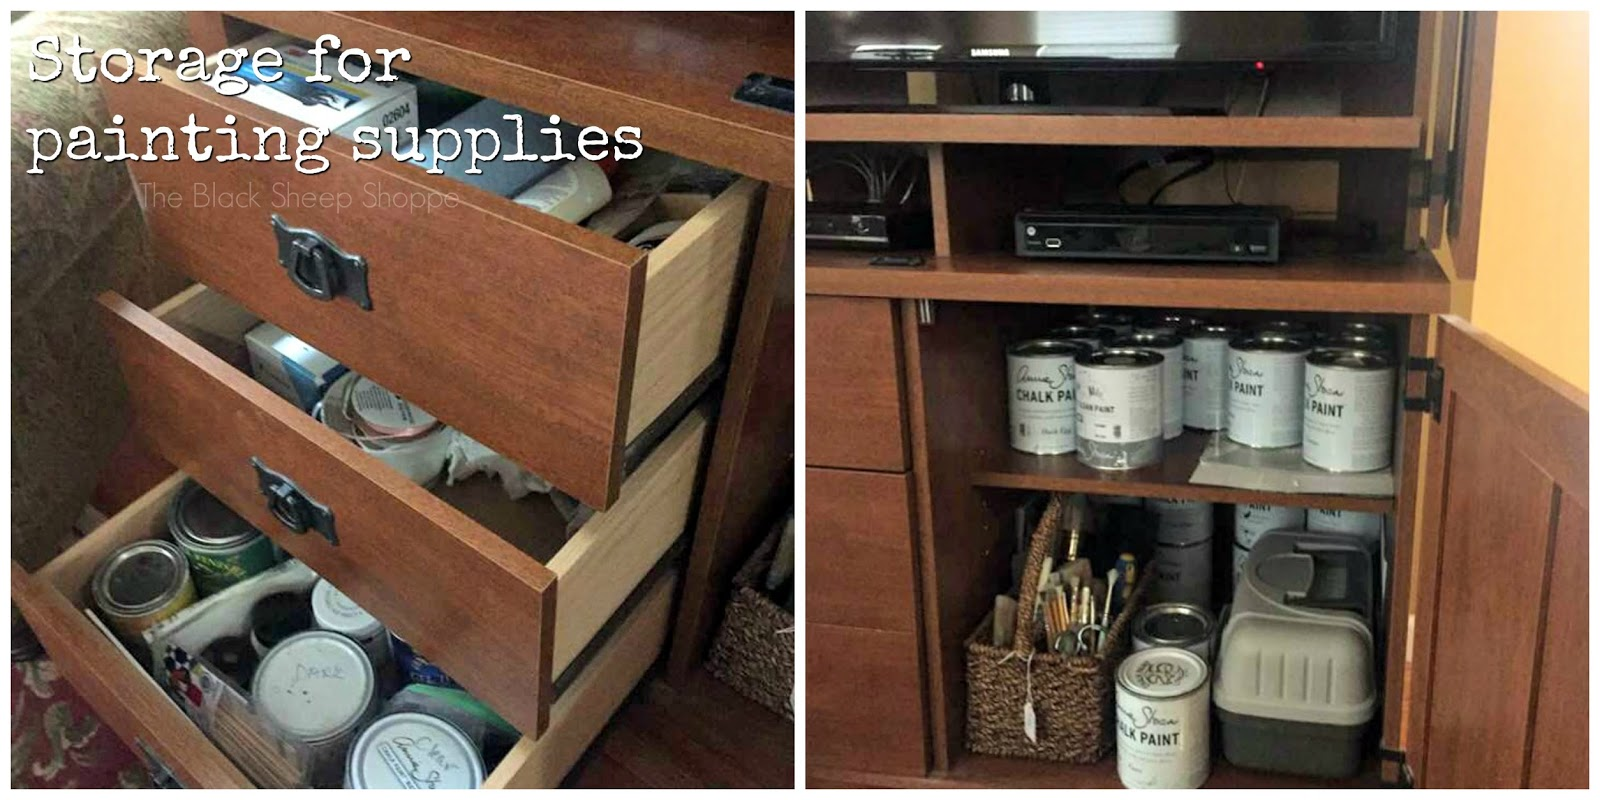 Storage solution for paint supplies